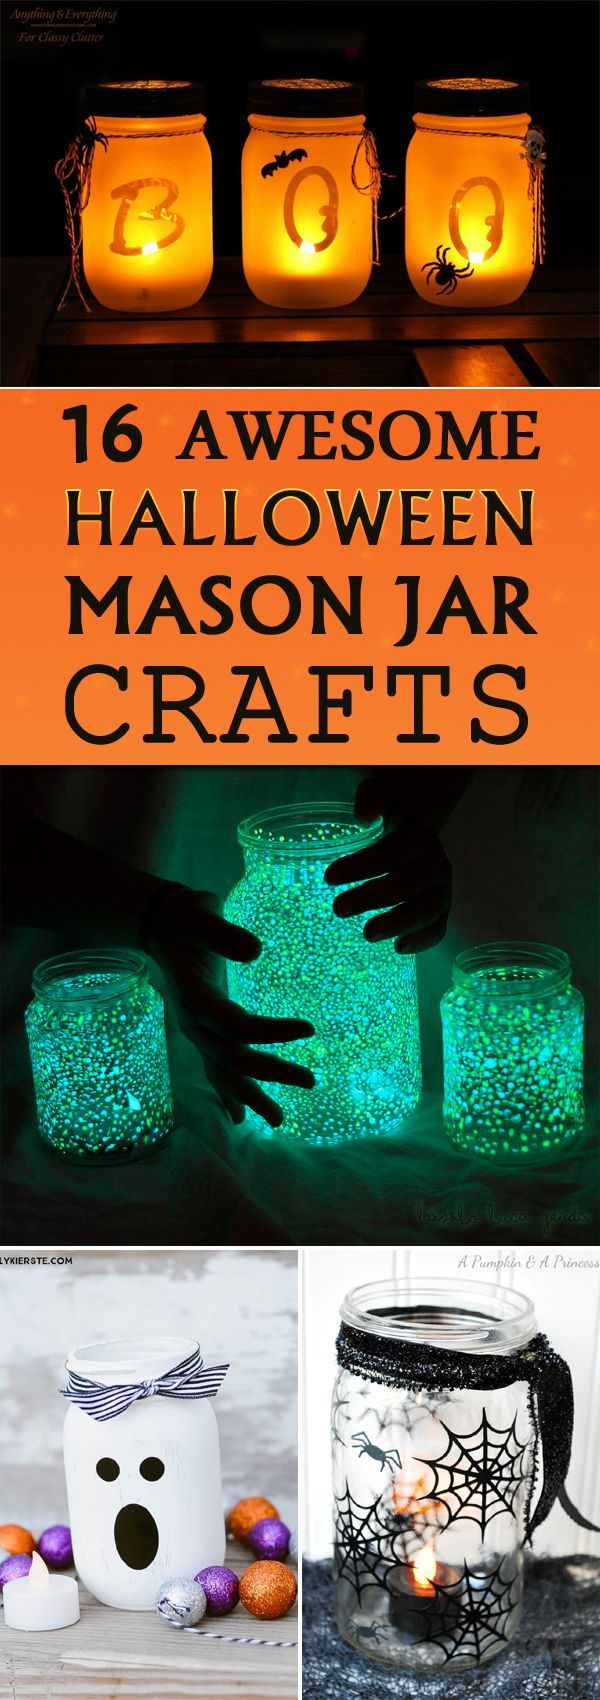 From creepy to spooky to hauntingly pretty, these Halloween mason jar crafts are sure to brighten up your house this holiday season.